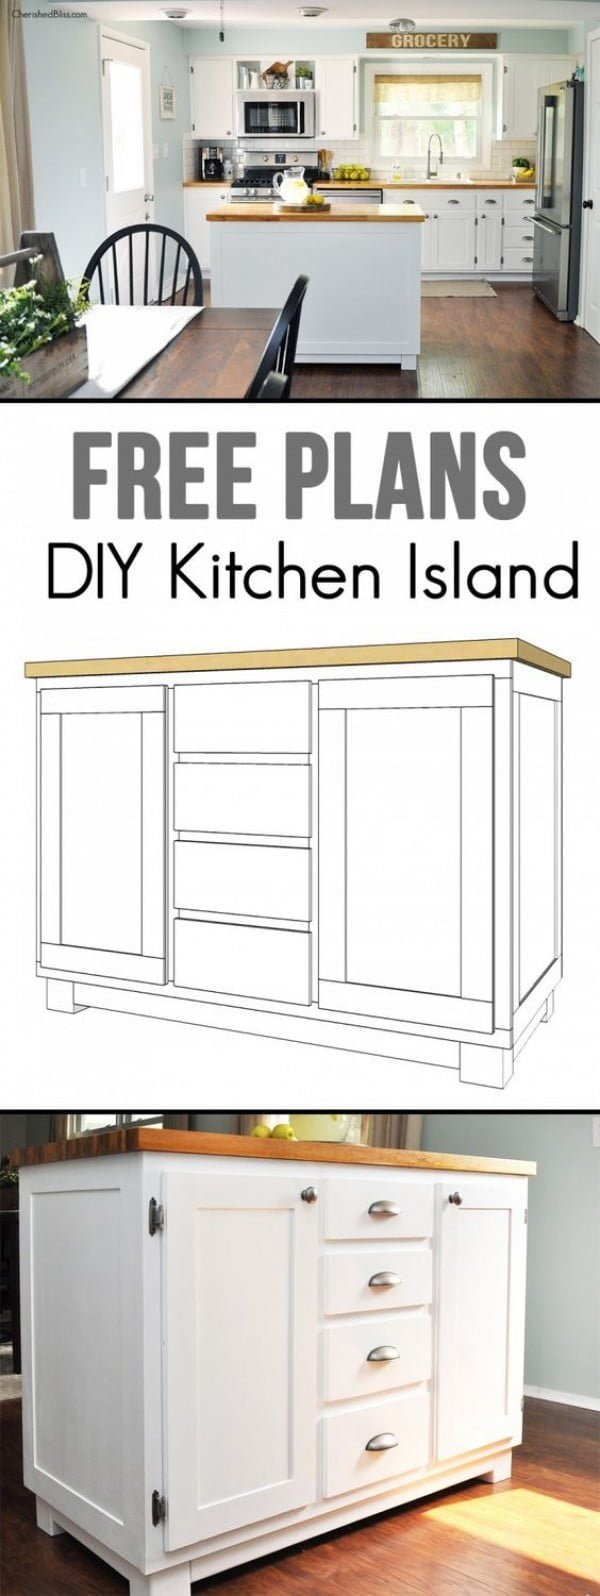 25 Easy DIY Kitchen Island Ideas That You Can Build on a Budget - Check out the tutorial on how to build a DIY kitchen island